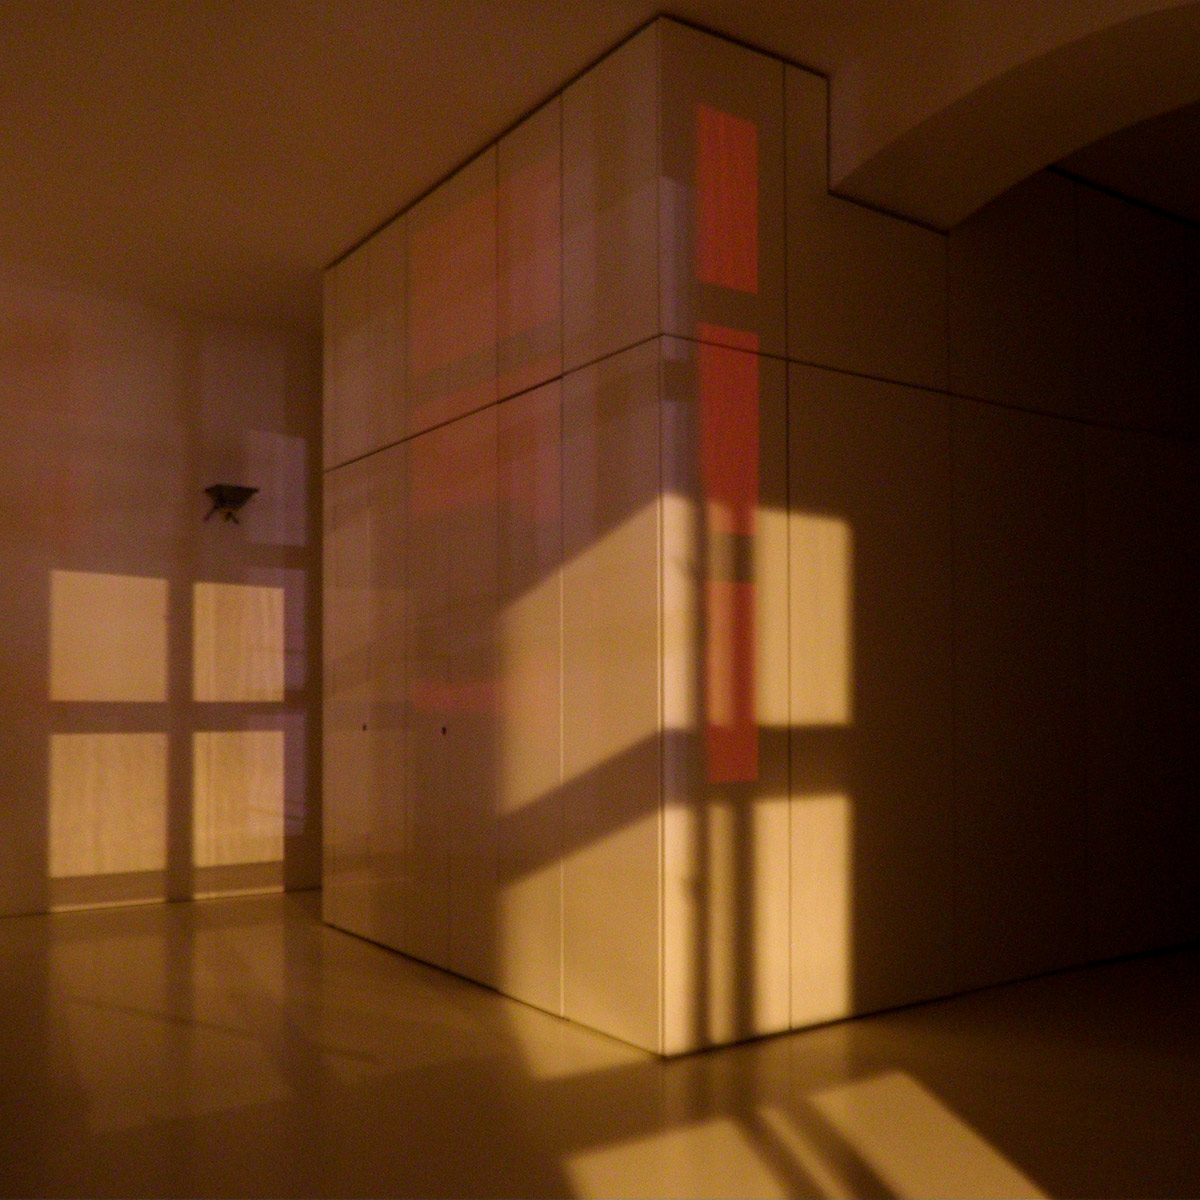 André Werner White Cube Nightshot Red, Vienna 2014. Long exposure photography of the unlit Studio 513 at MuseumsQuartier, Vienna.